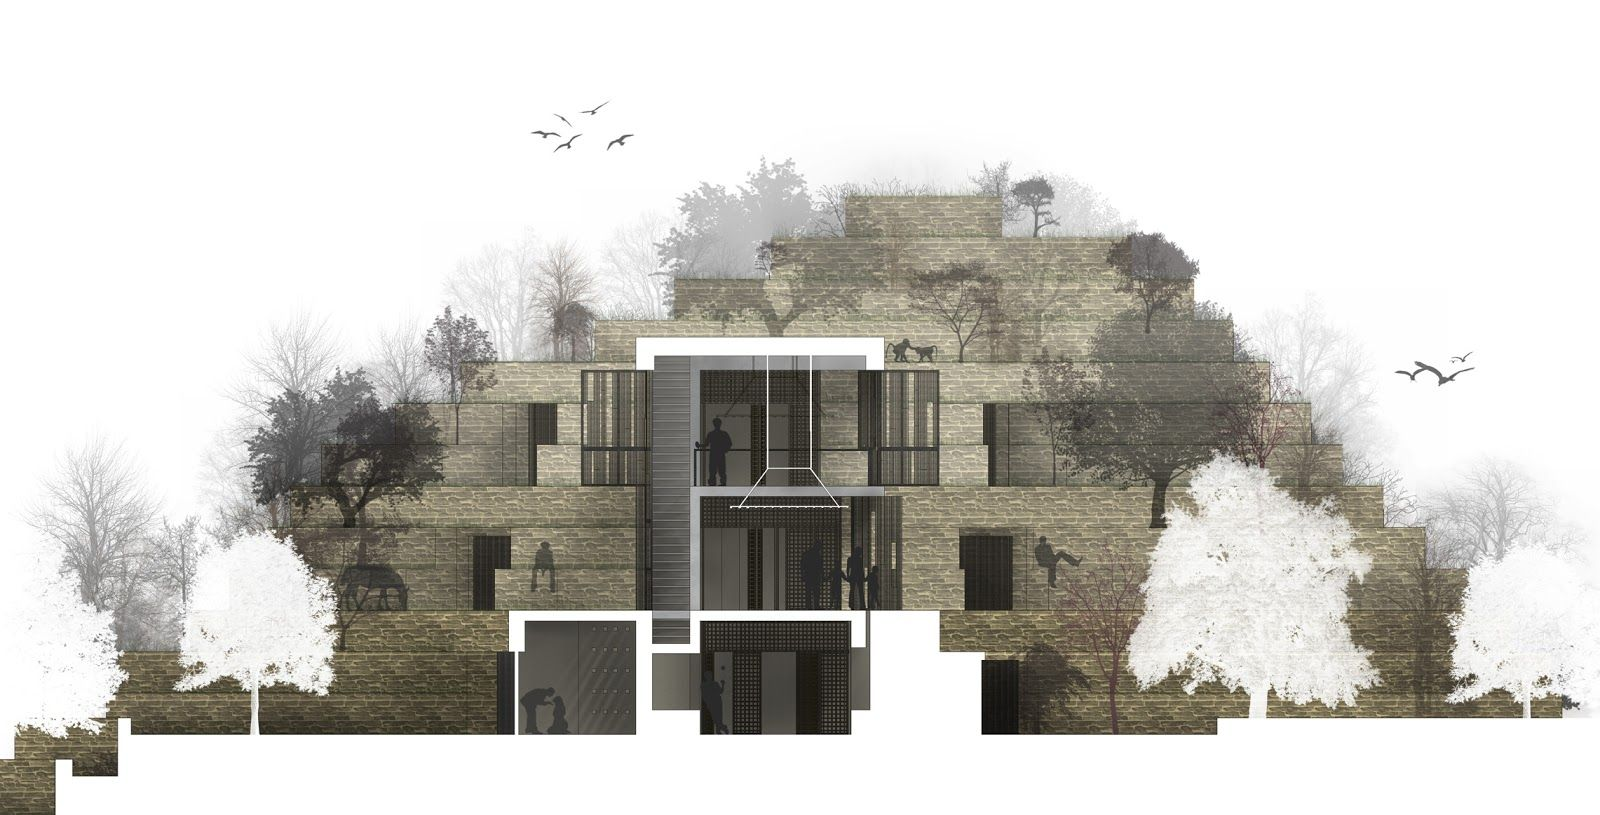 Lucy Smith Architectural CV Thesis Project Architecture bbbdfabfefedafb